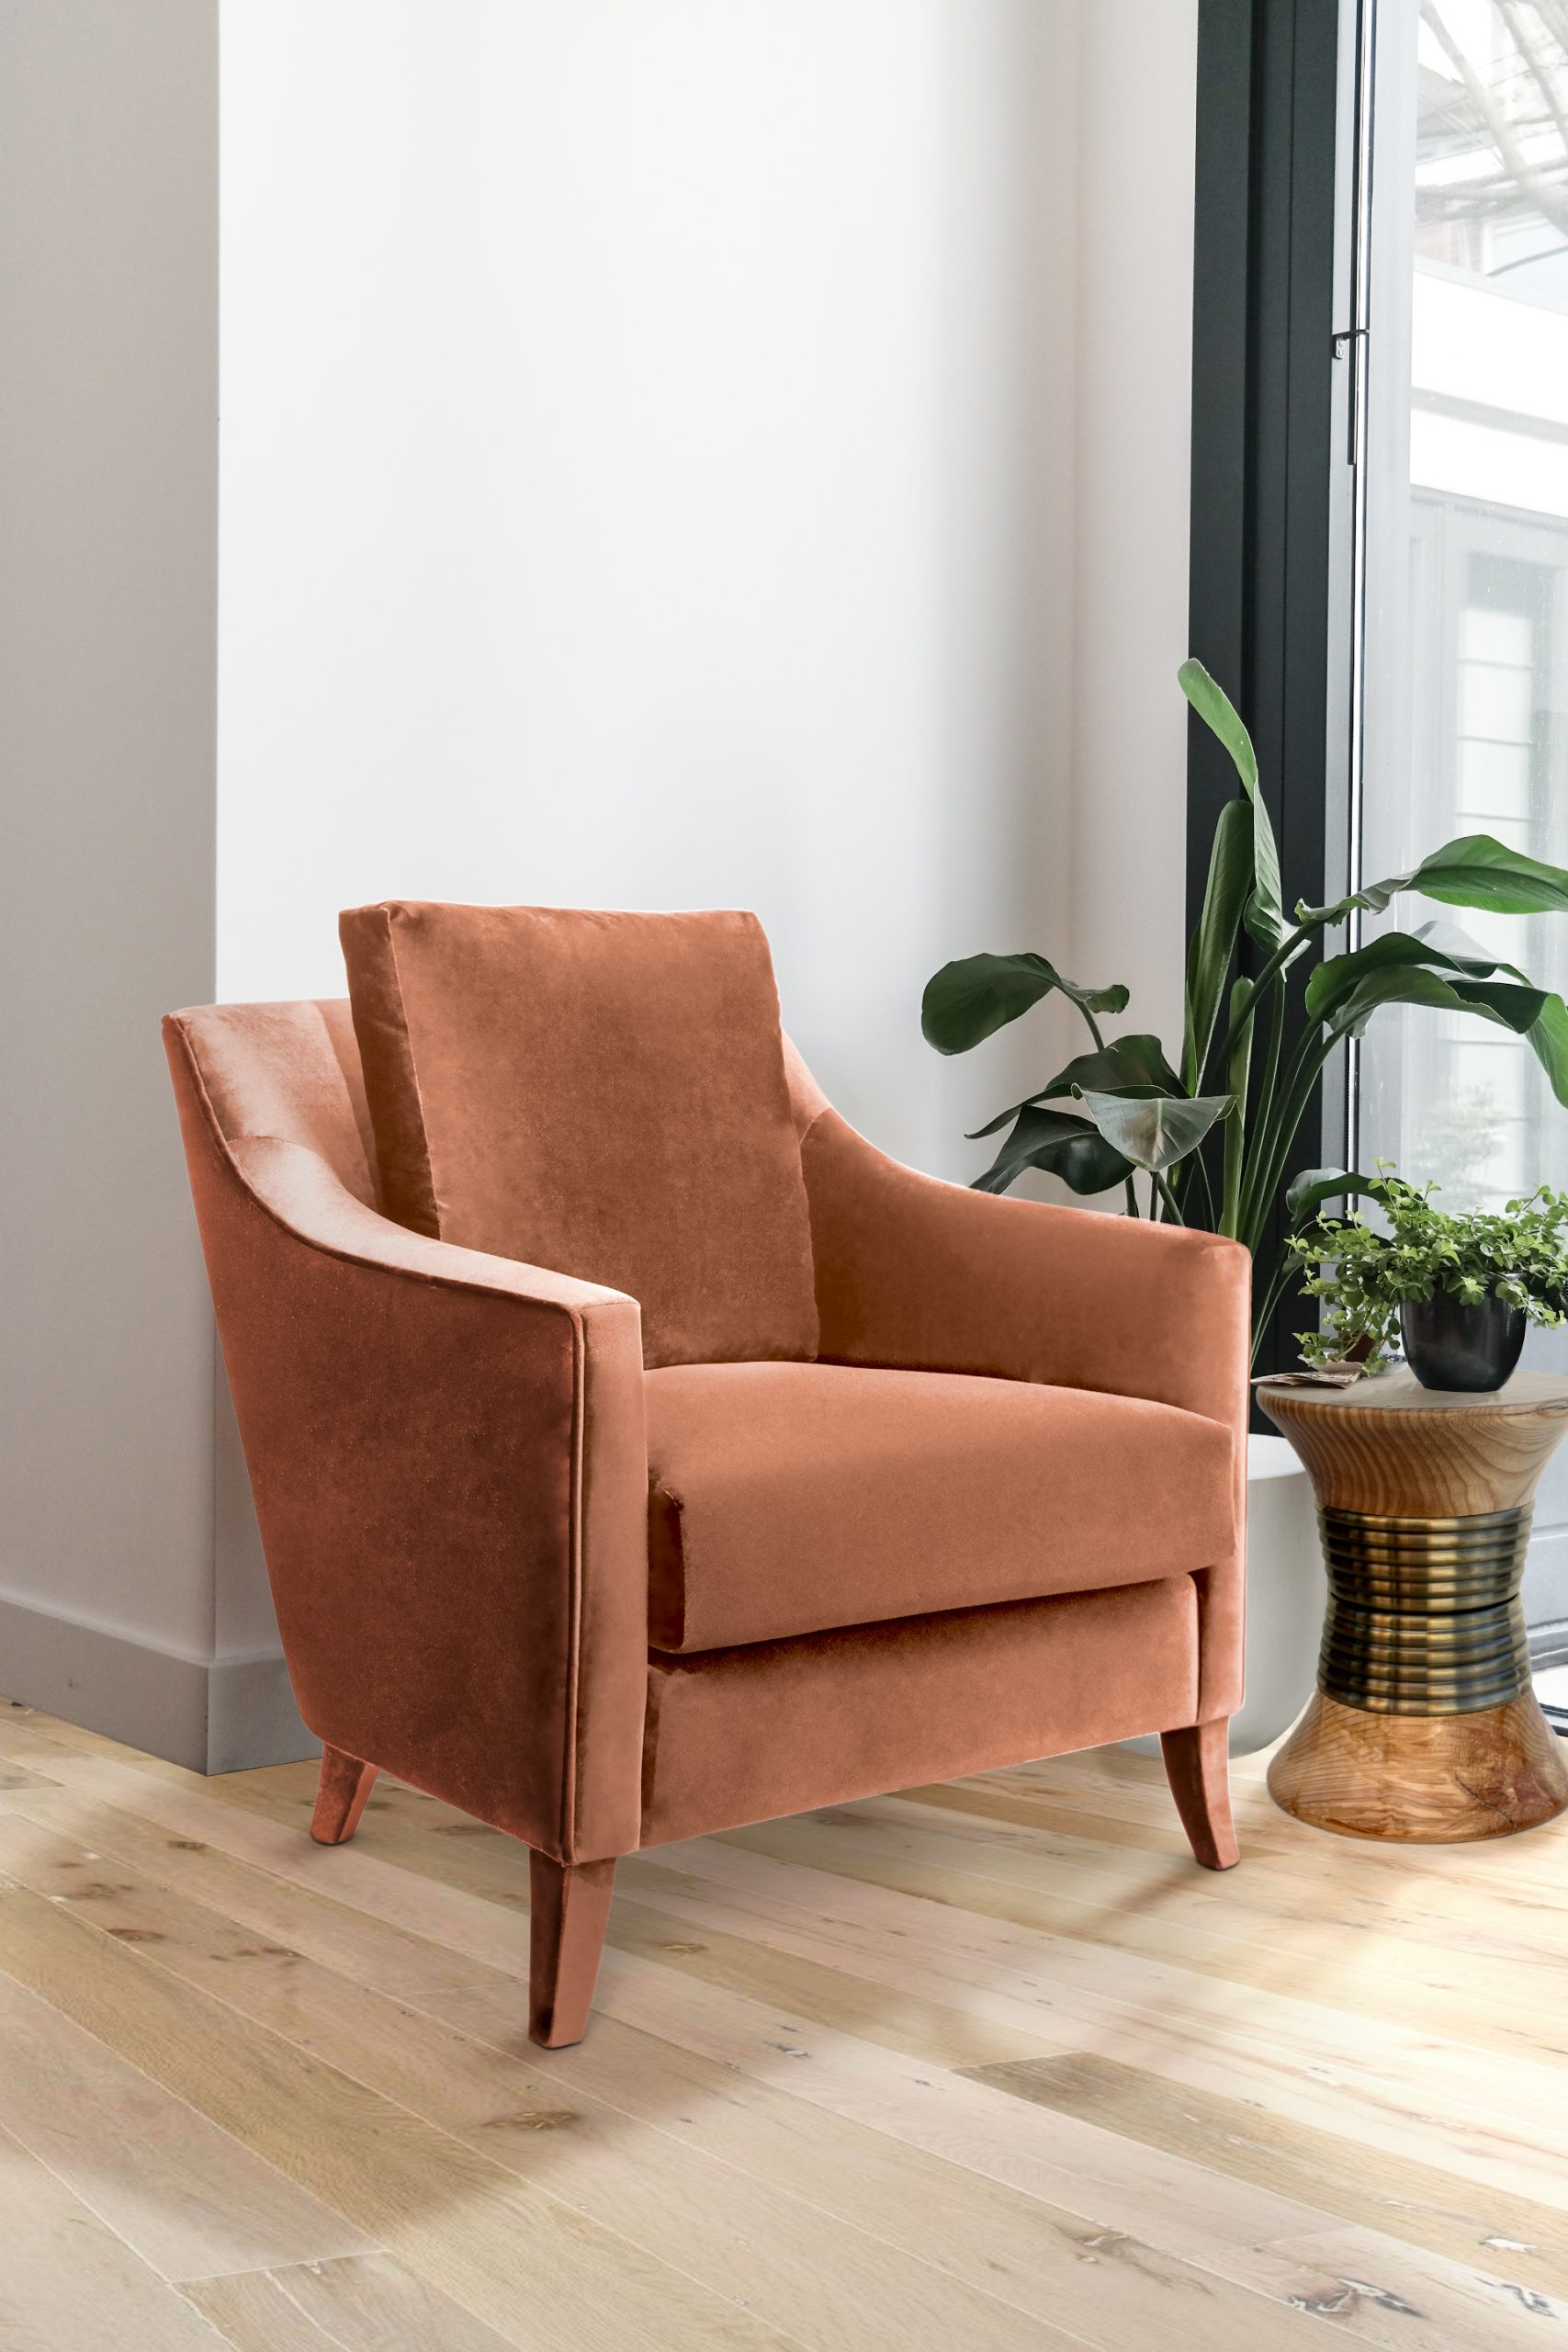 20 Modern Armchairs For A Bold And Timeless Design modern armchairs 20 Modern Armchairs For A Bold And Timeless Design 20 Modern Armchairs For A Bold And Timeless Design6 scaled